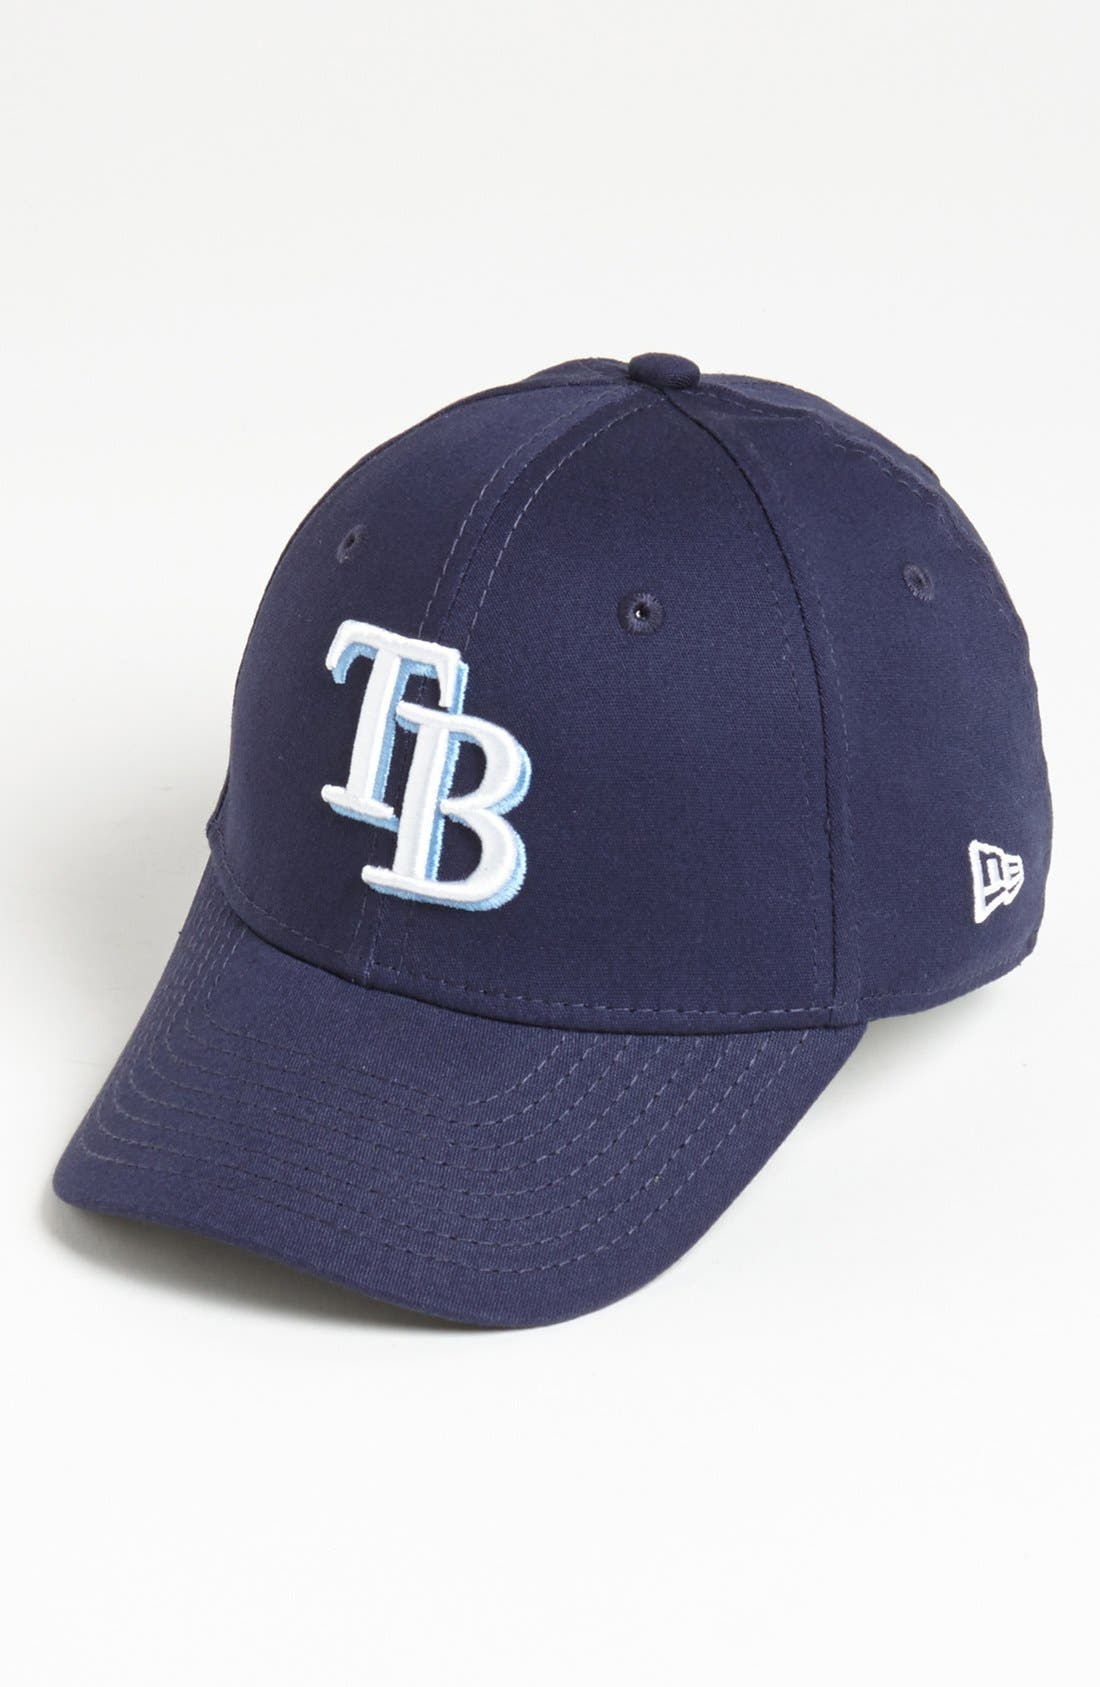 'Tampa Bay Rays - Tie Breaker' Baseball Cap,                             Main thumbnail 1, color,